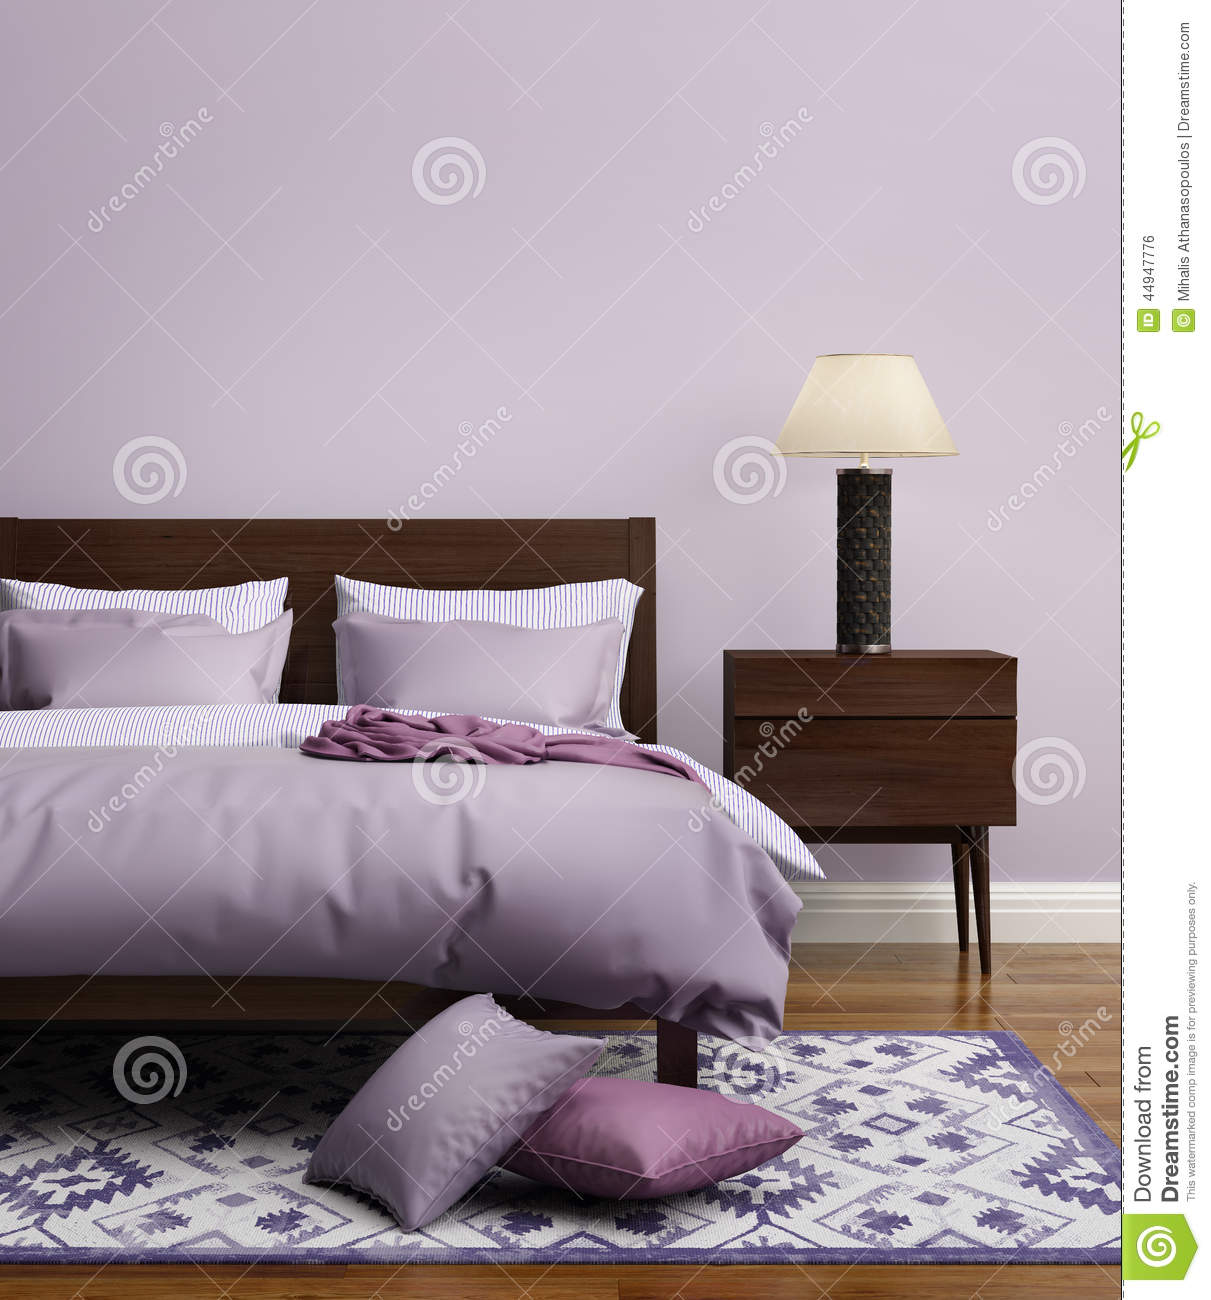 chambre coucher de luxe mauve clair l gante contemporaine photo stock image 44947776. Black Bedroom Furniture Sets. Home Design Ideas